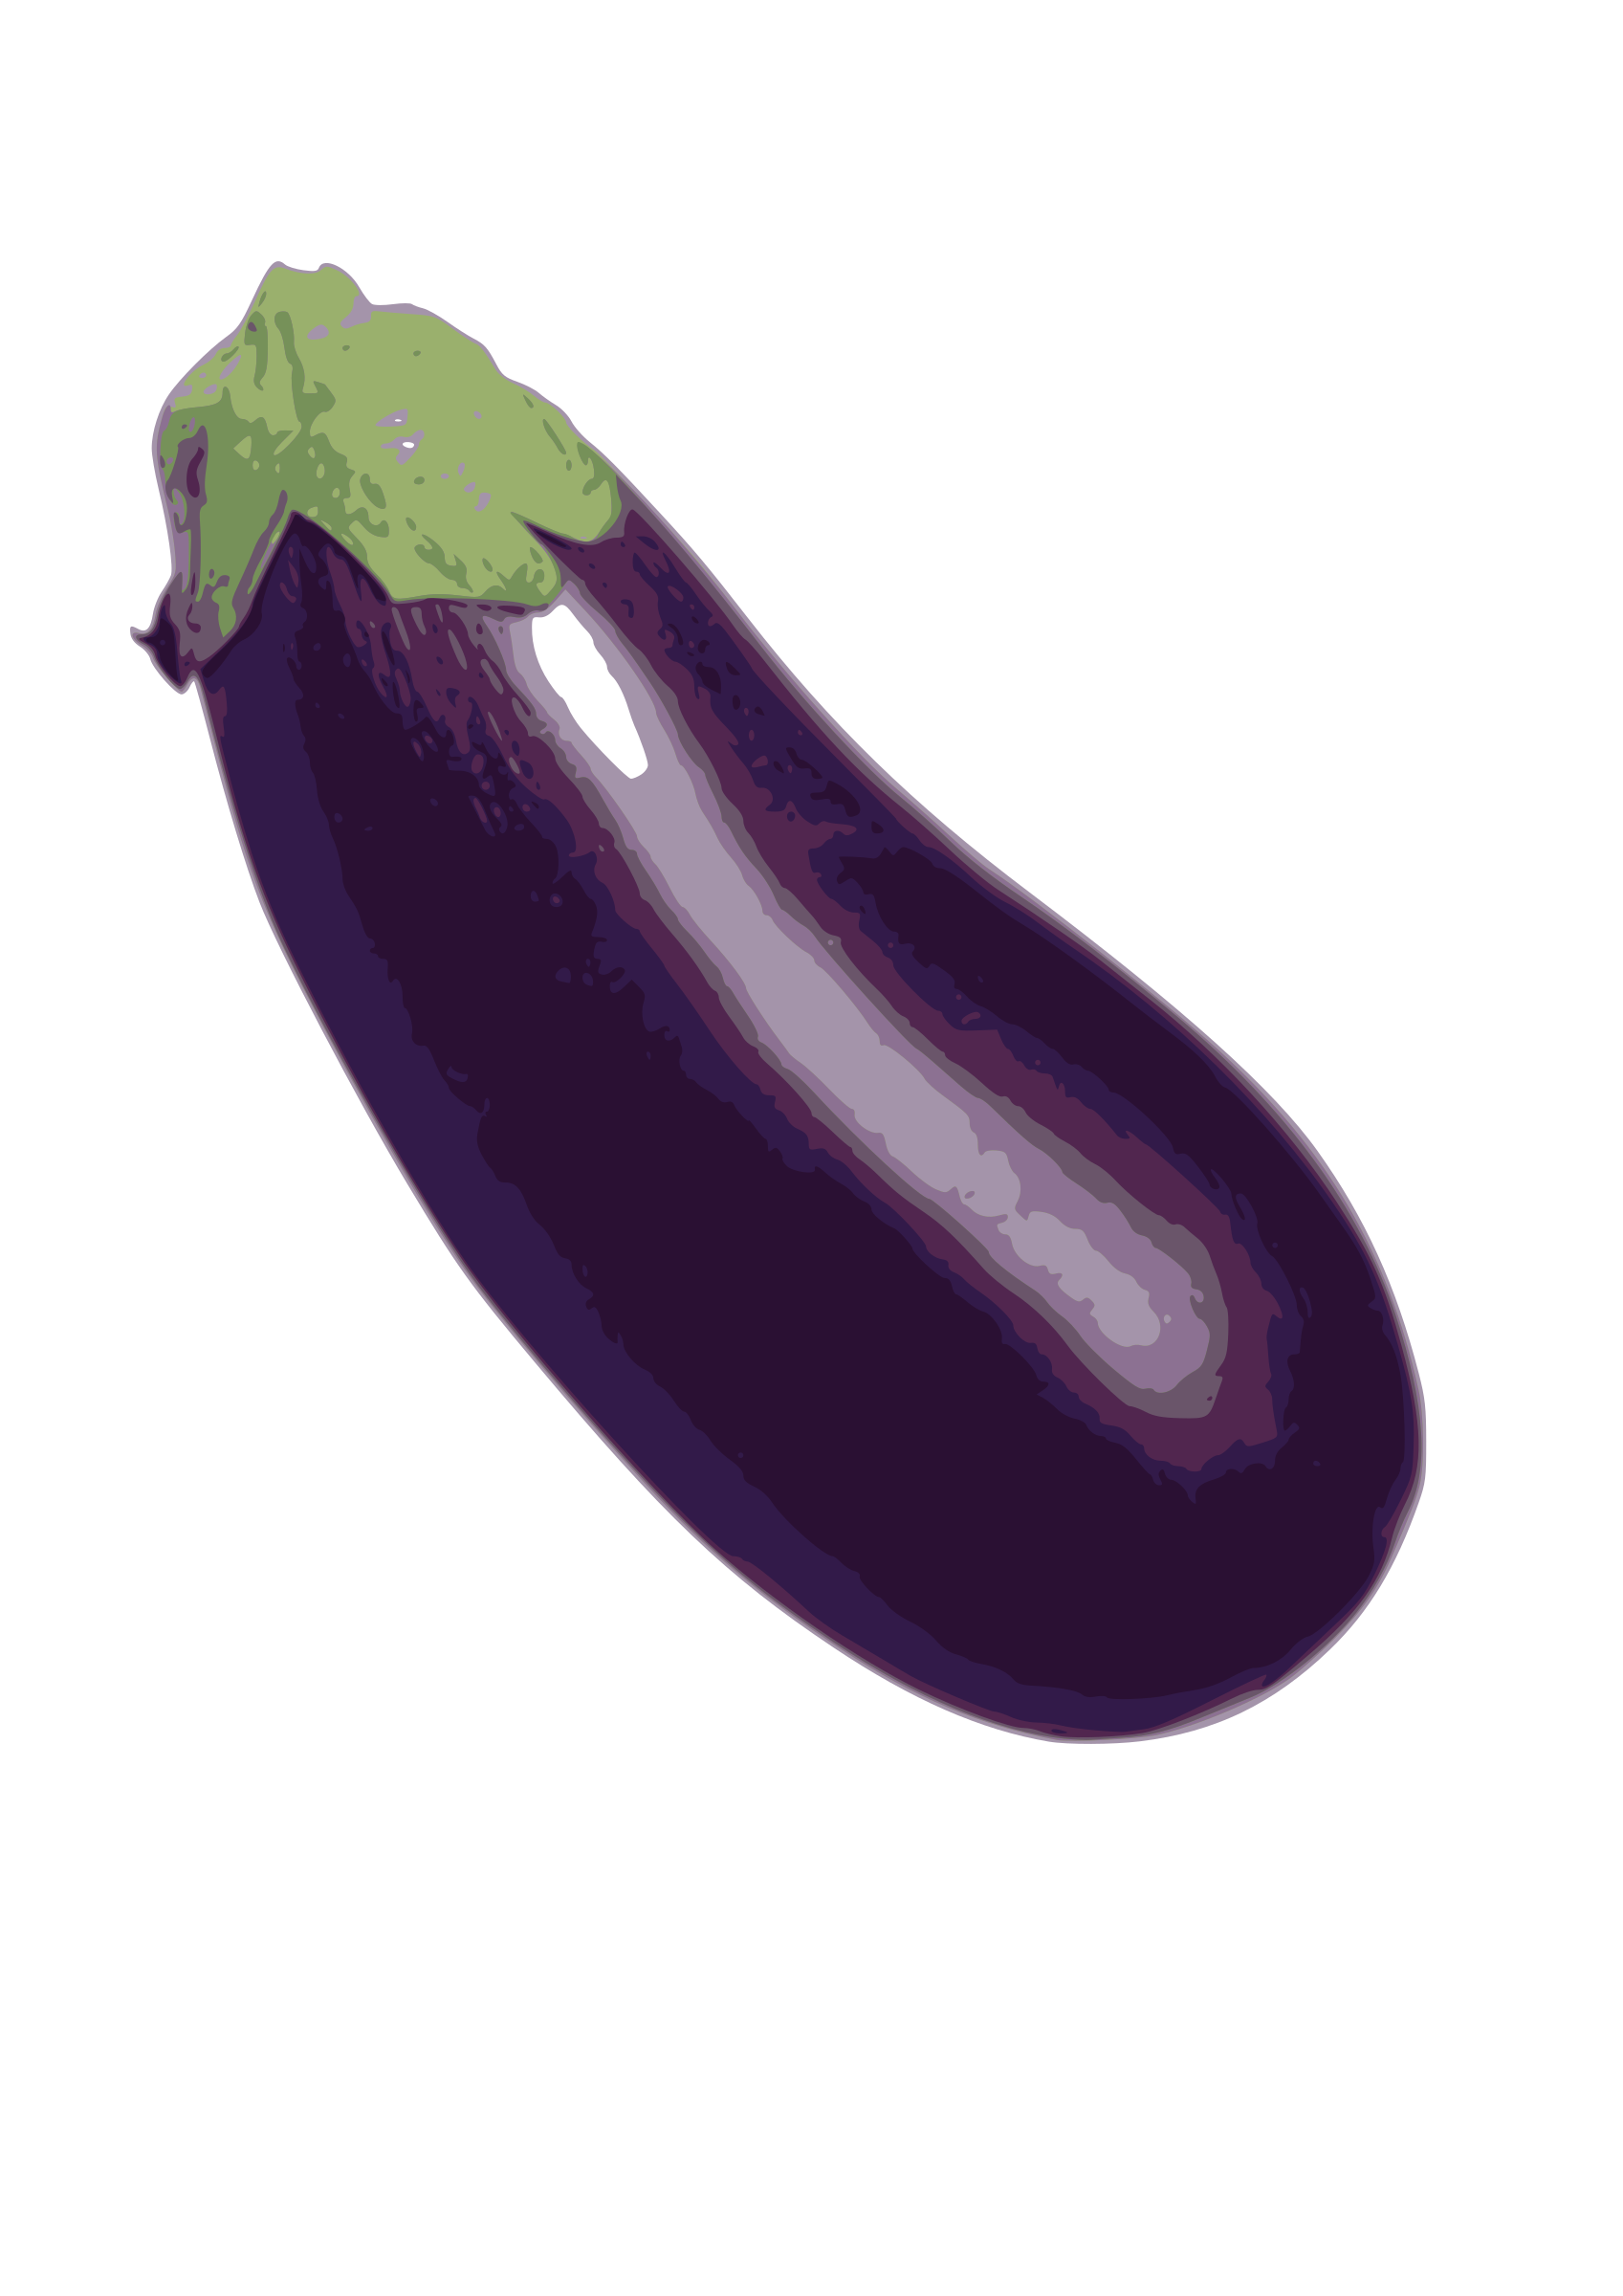 Best Free Eggplant Png Image